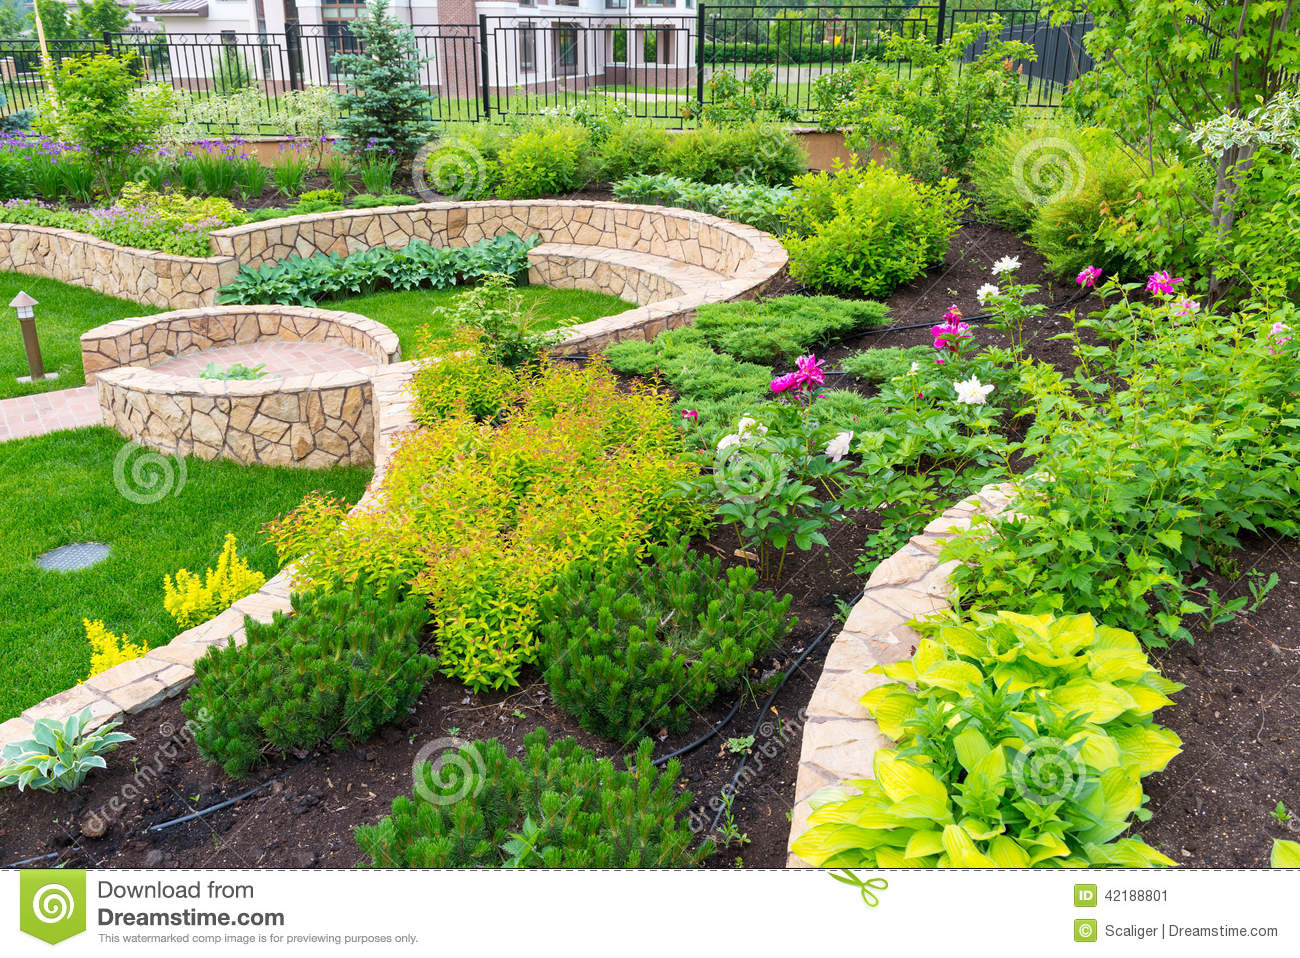 Natural landscaping in home garden stock photo image for Home and garden landscaping